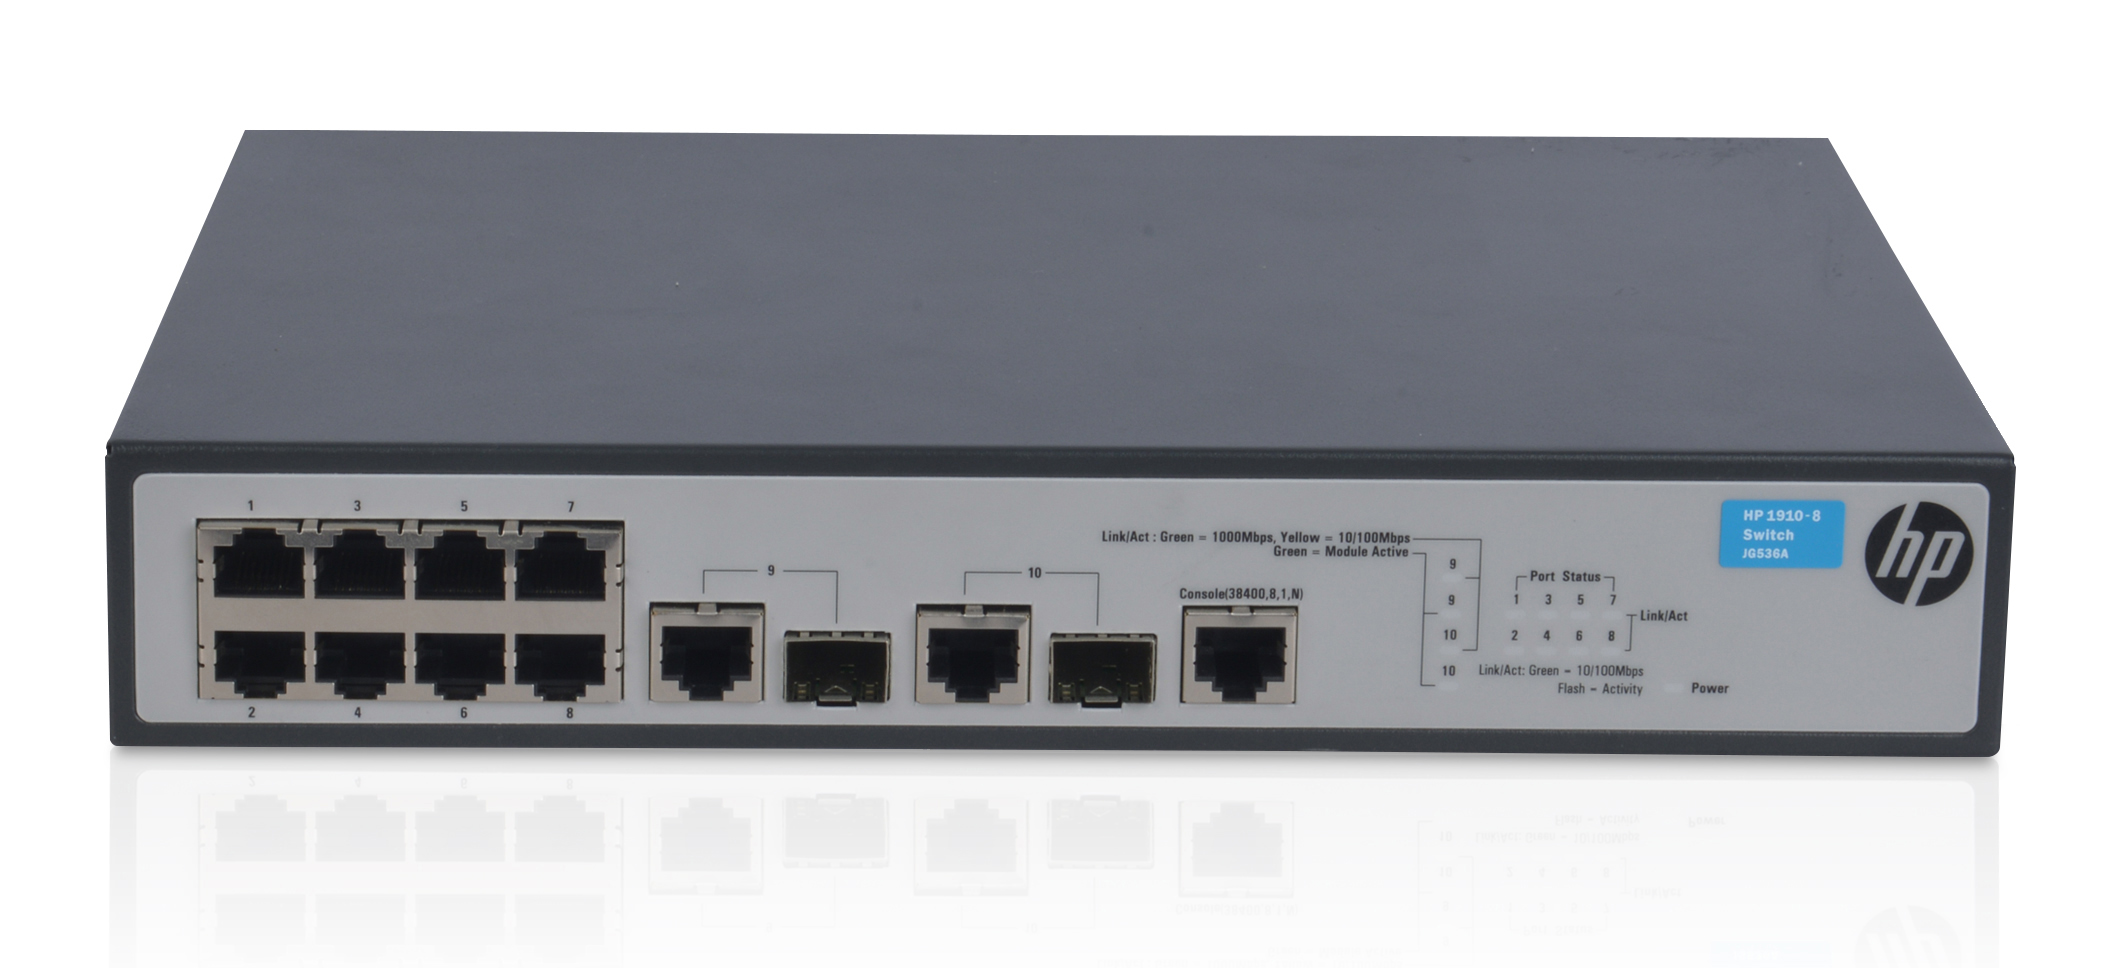 HPE 1910 8 Switch